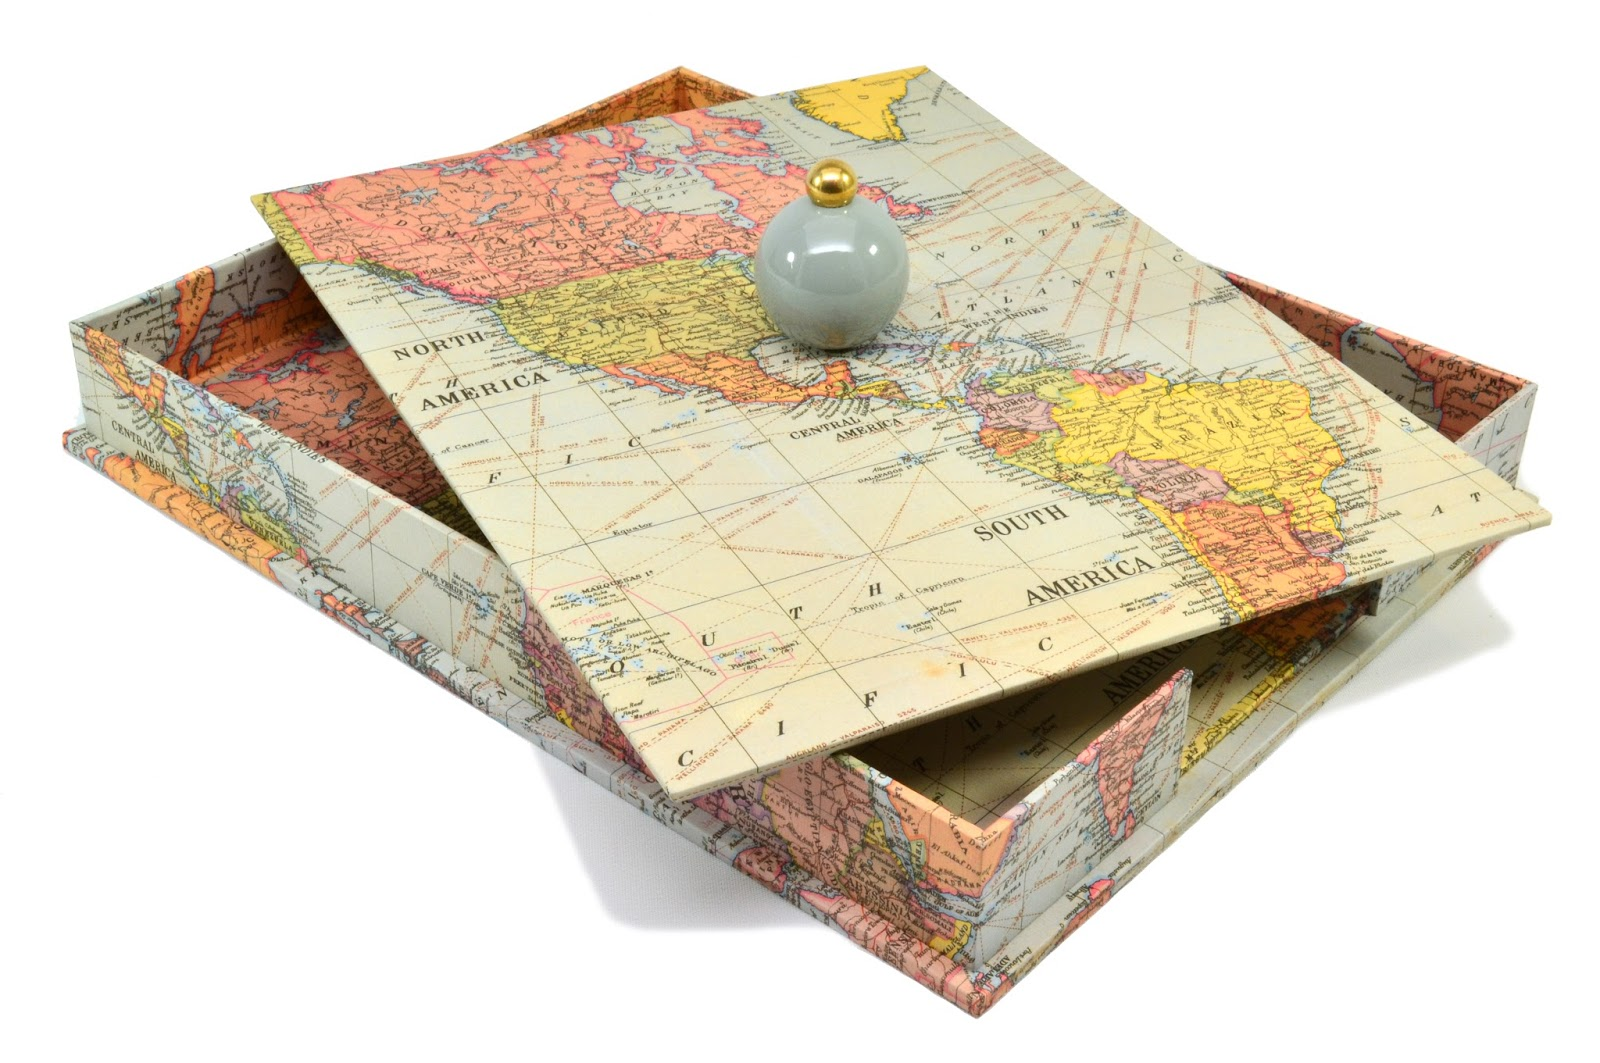 Parvum opus for this in box project we used a vintage world map design gumiabroncs Choice Image